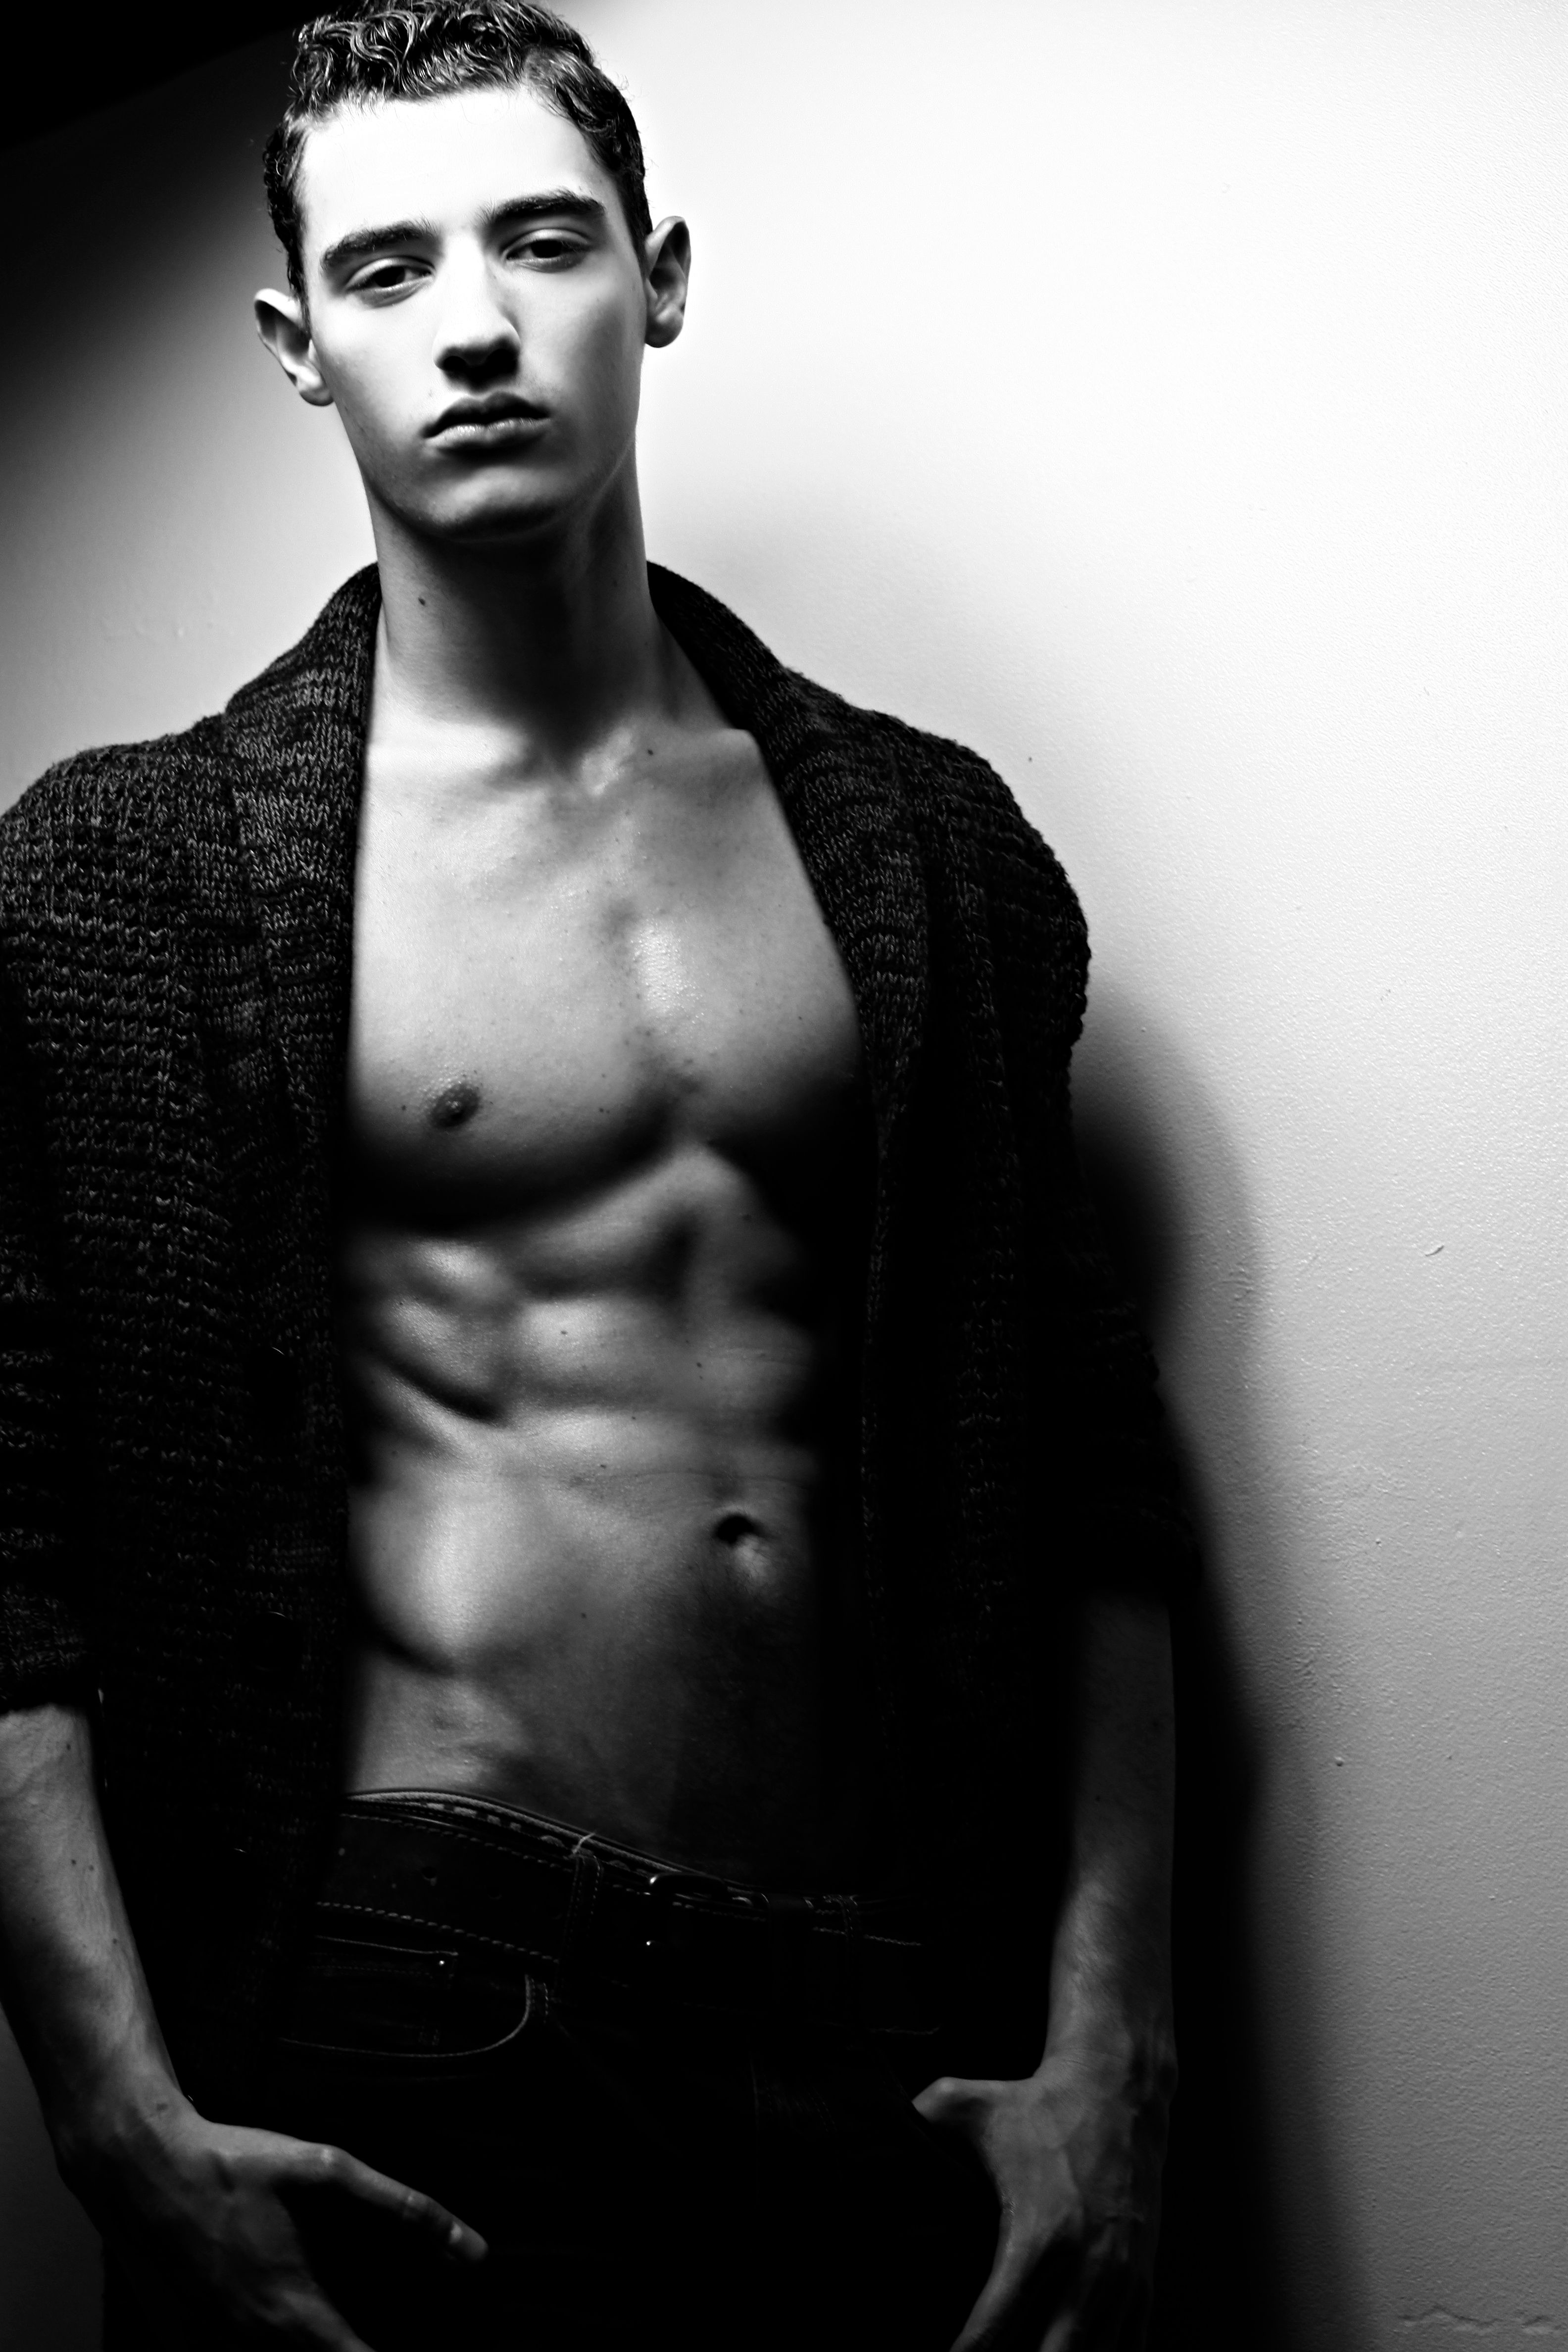 HI END MENS FASION ideas for a shoot; as well as ...